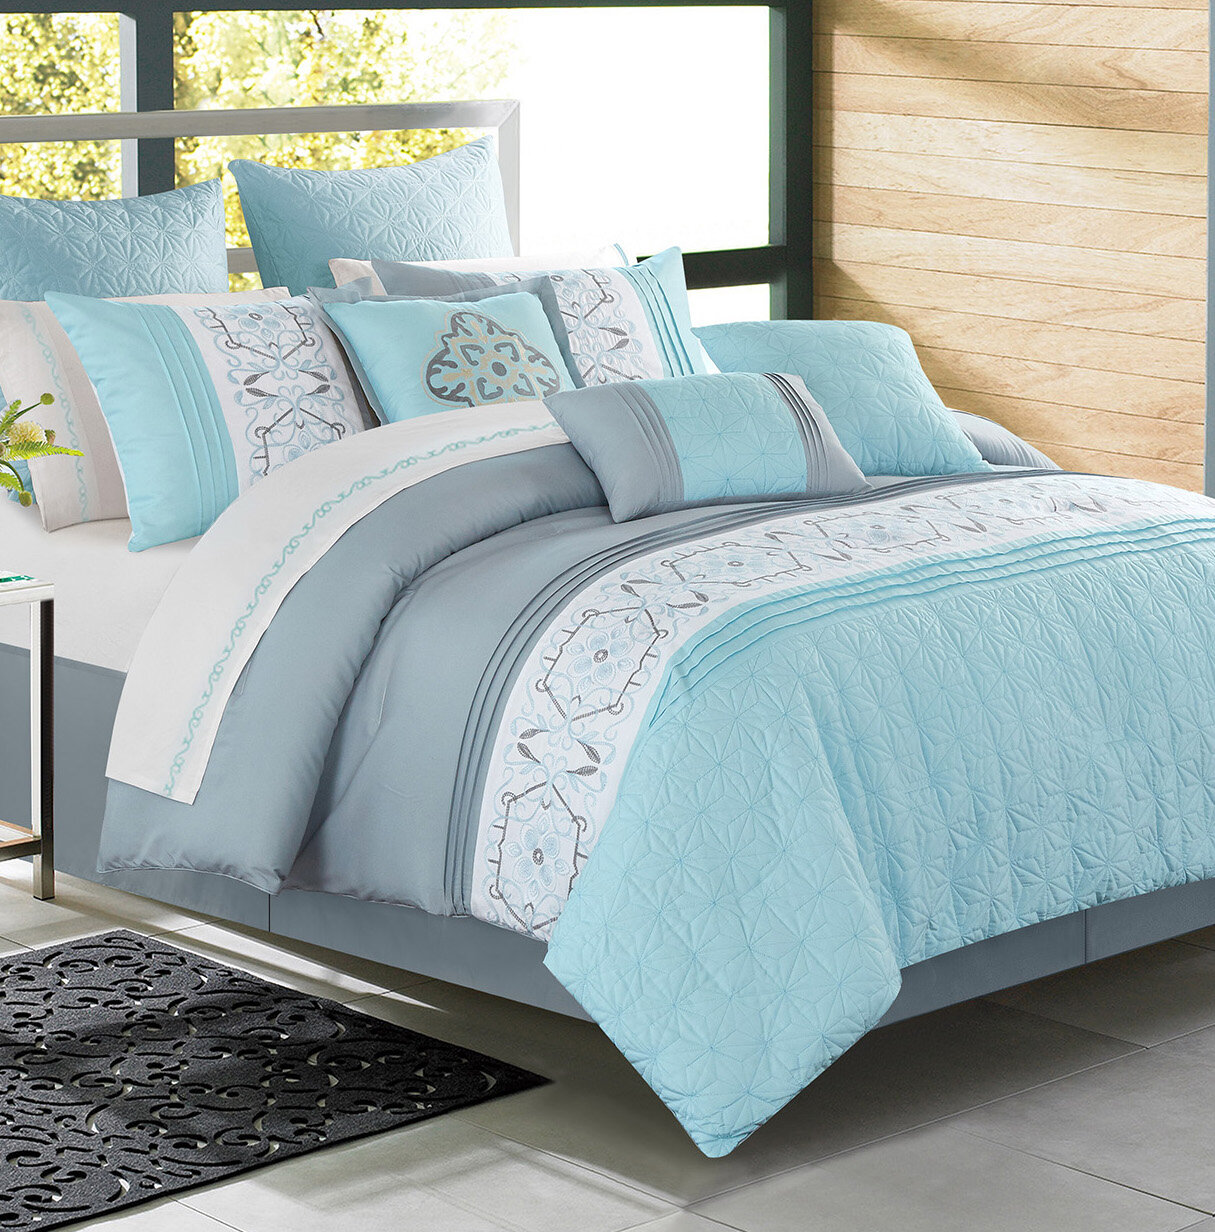 Red Barrel Studio Enright Alysha Blue Comforter Set Reviews Wayfair